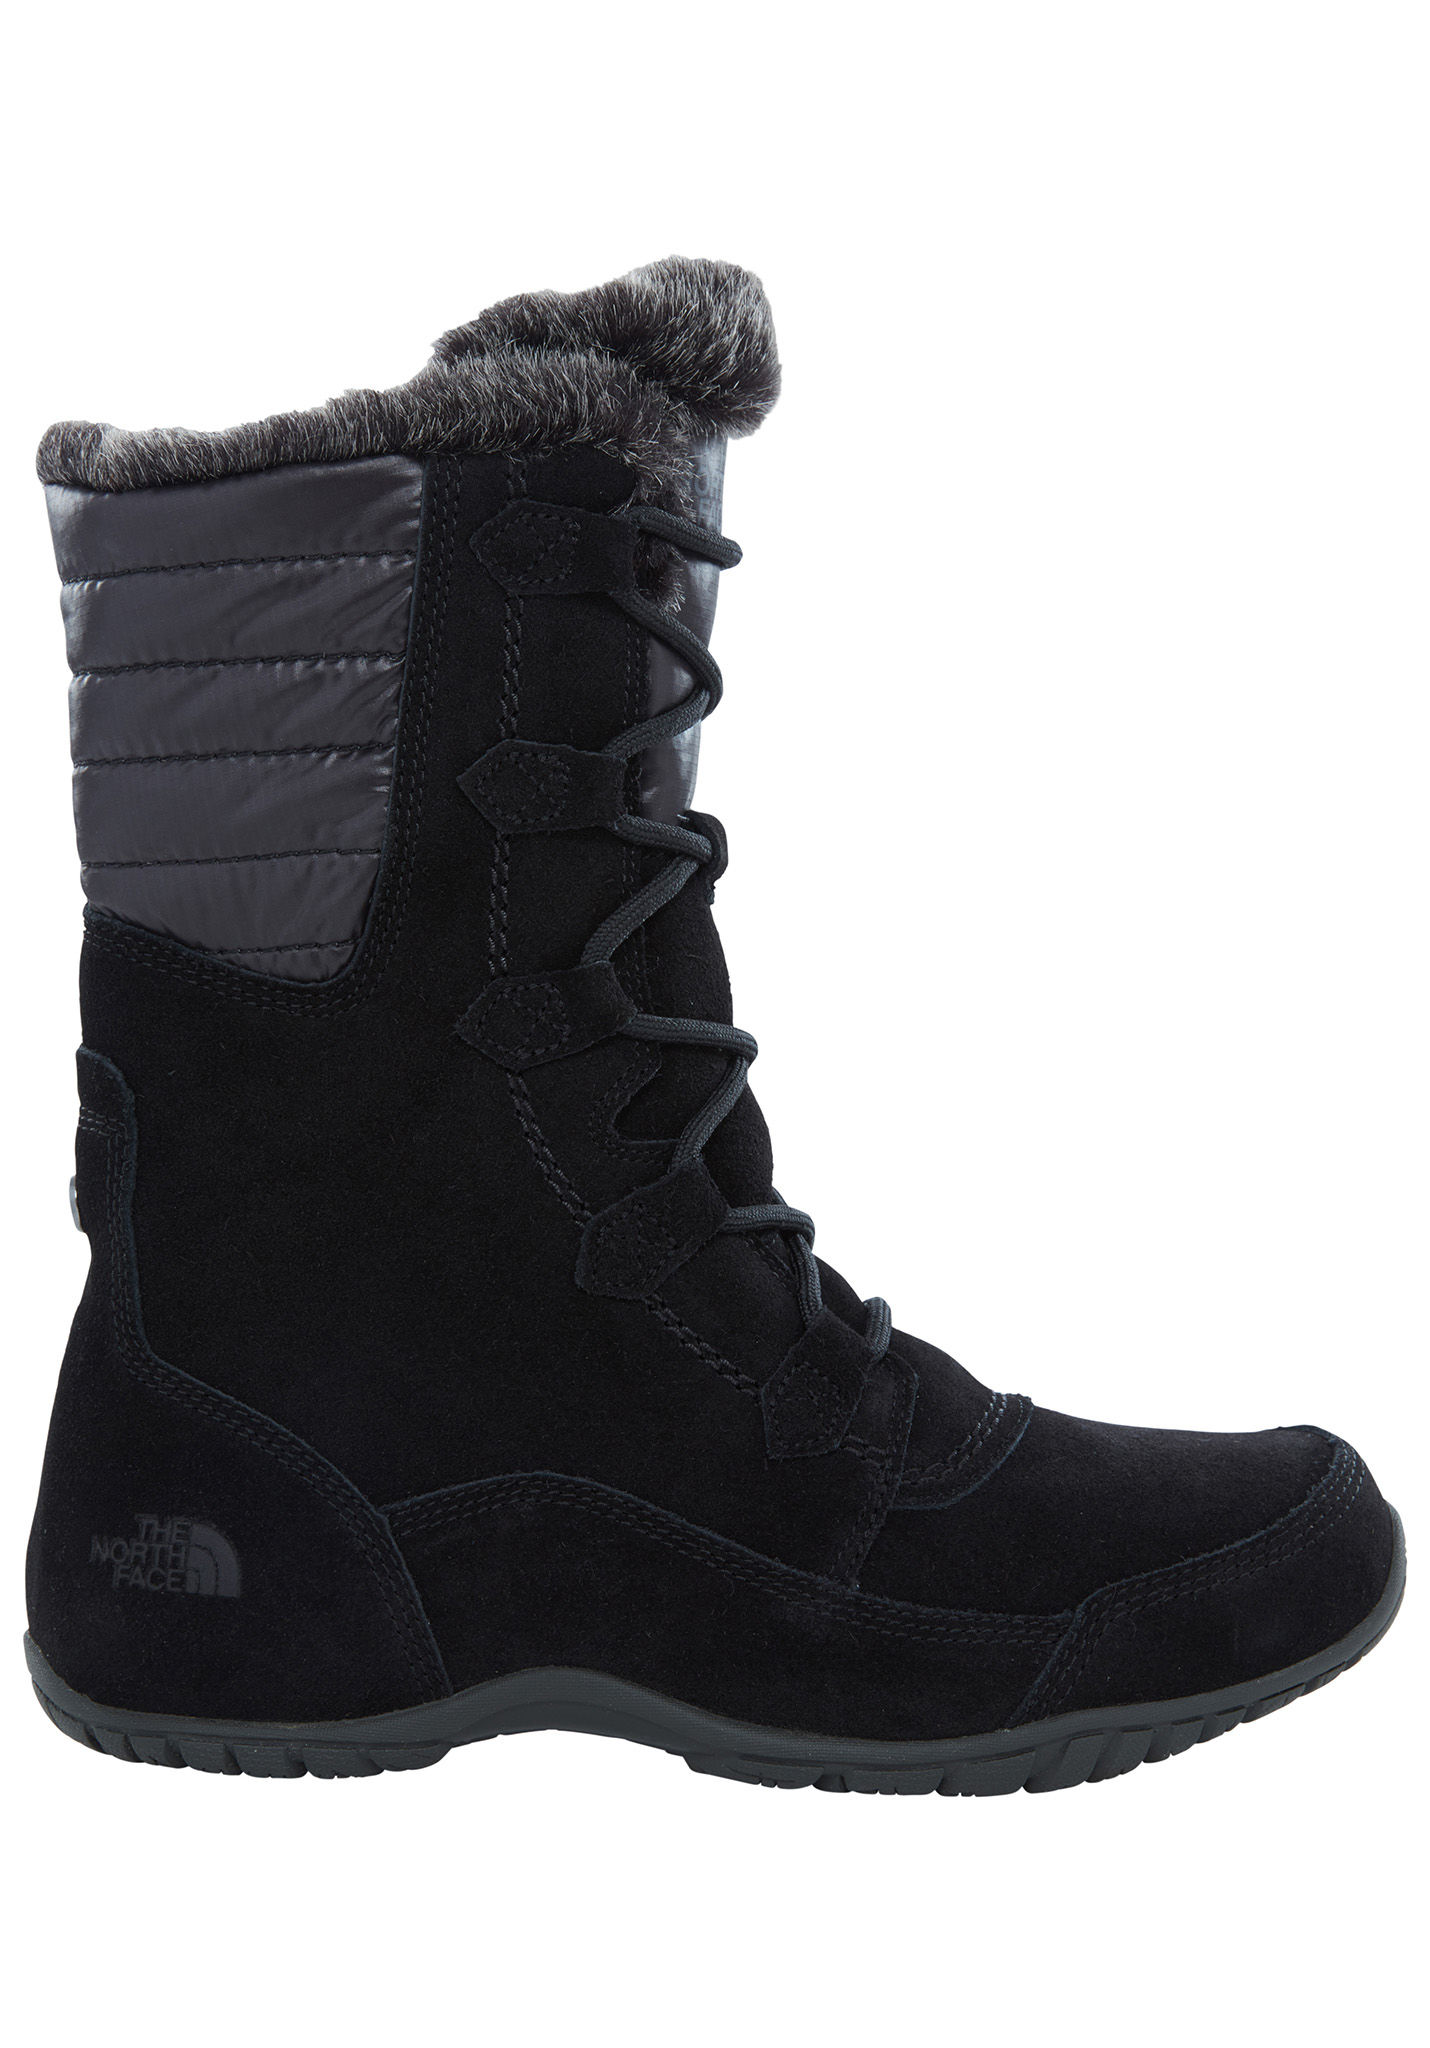 580e8aace58 THE NORTH FACE Nuptse Purna II - Boots for Women - Black - Planet Sports